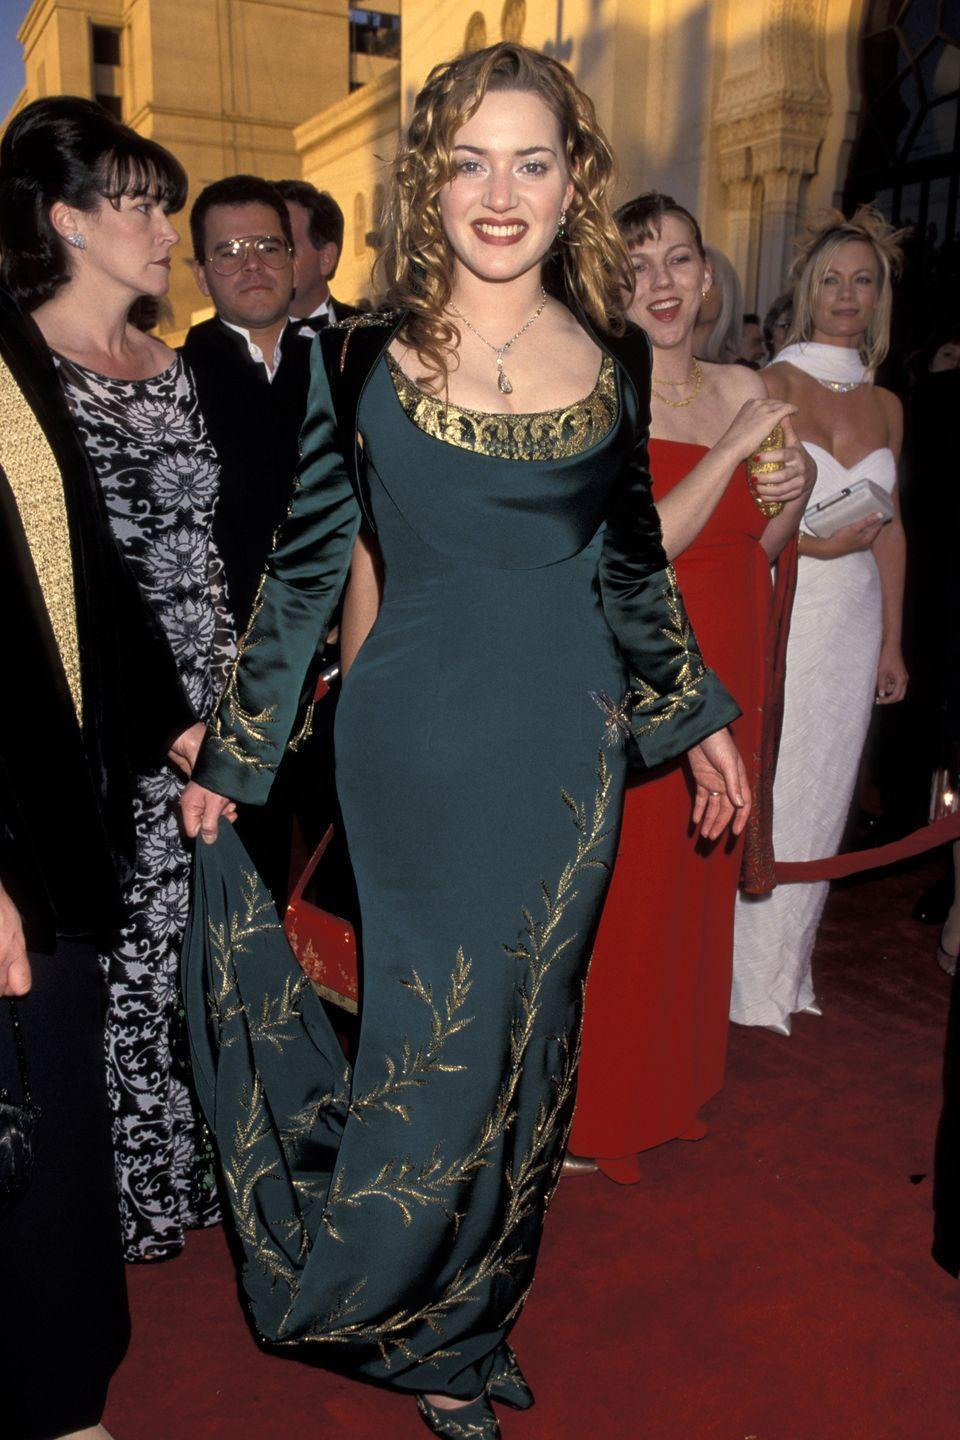 <p>The deep-green color and gold embroidery on the Givenchy gown Kate Winslet wore to the 1998 Oscars is so strikingly similar to Merida's that we have to wonder if Disney used it as inspiration for its 2012 movie.</p>